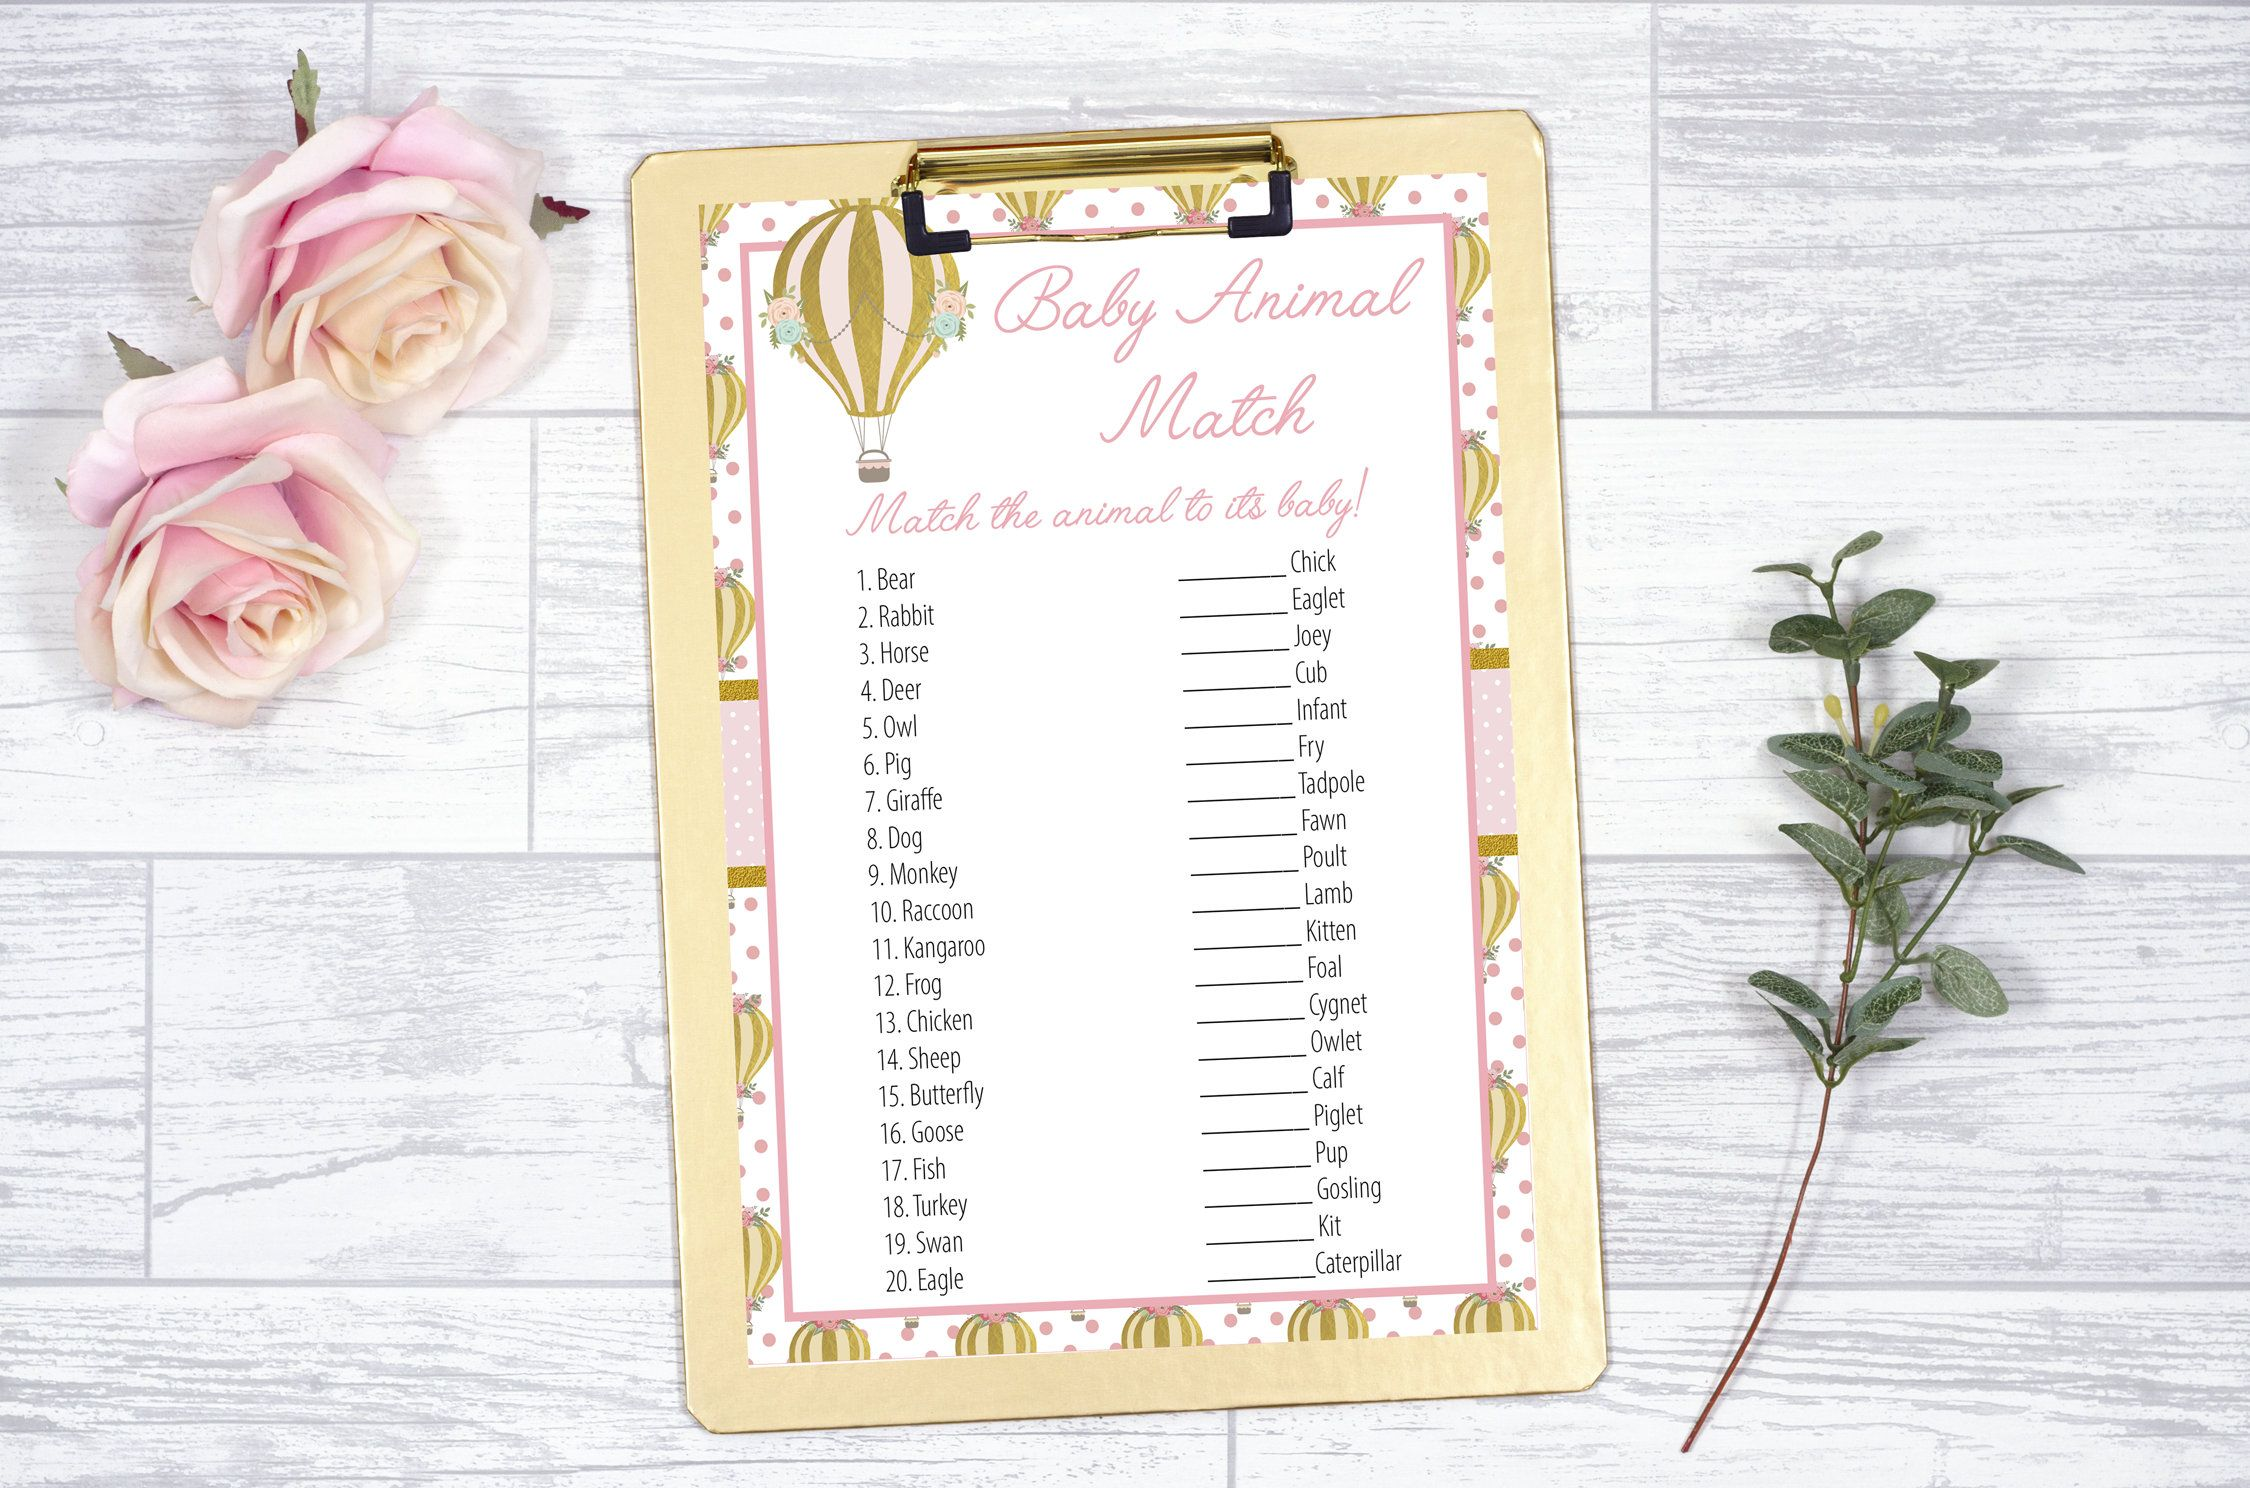 Printable Hot Air Balloon Girl Shower Baby Animal Match